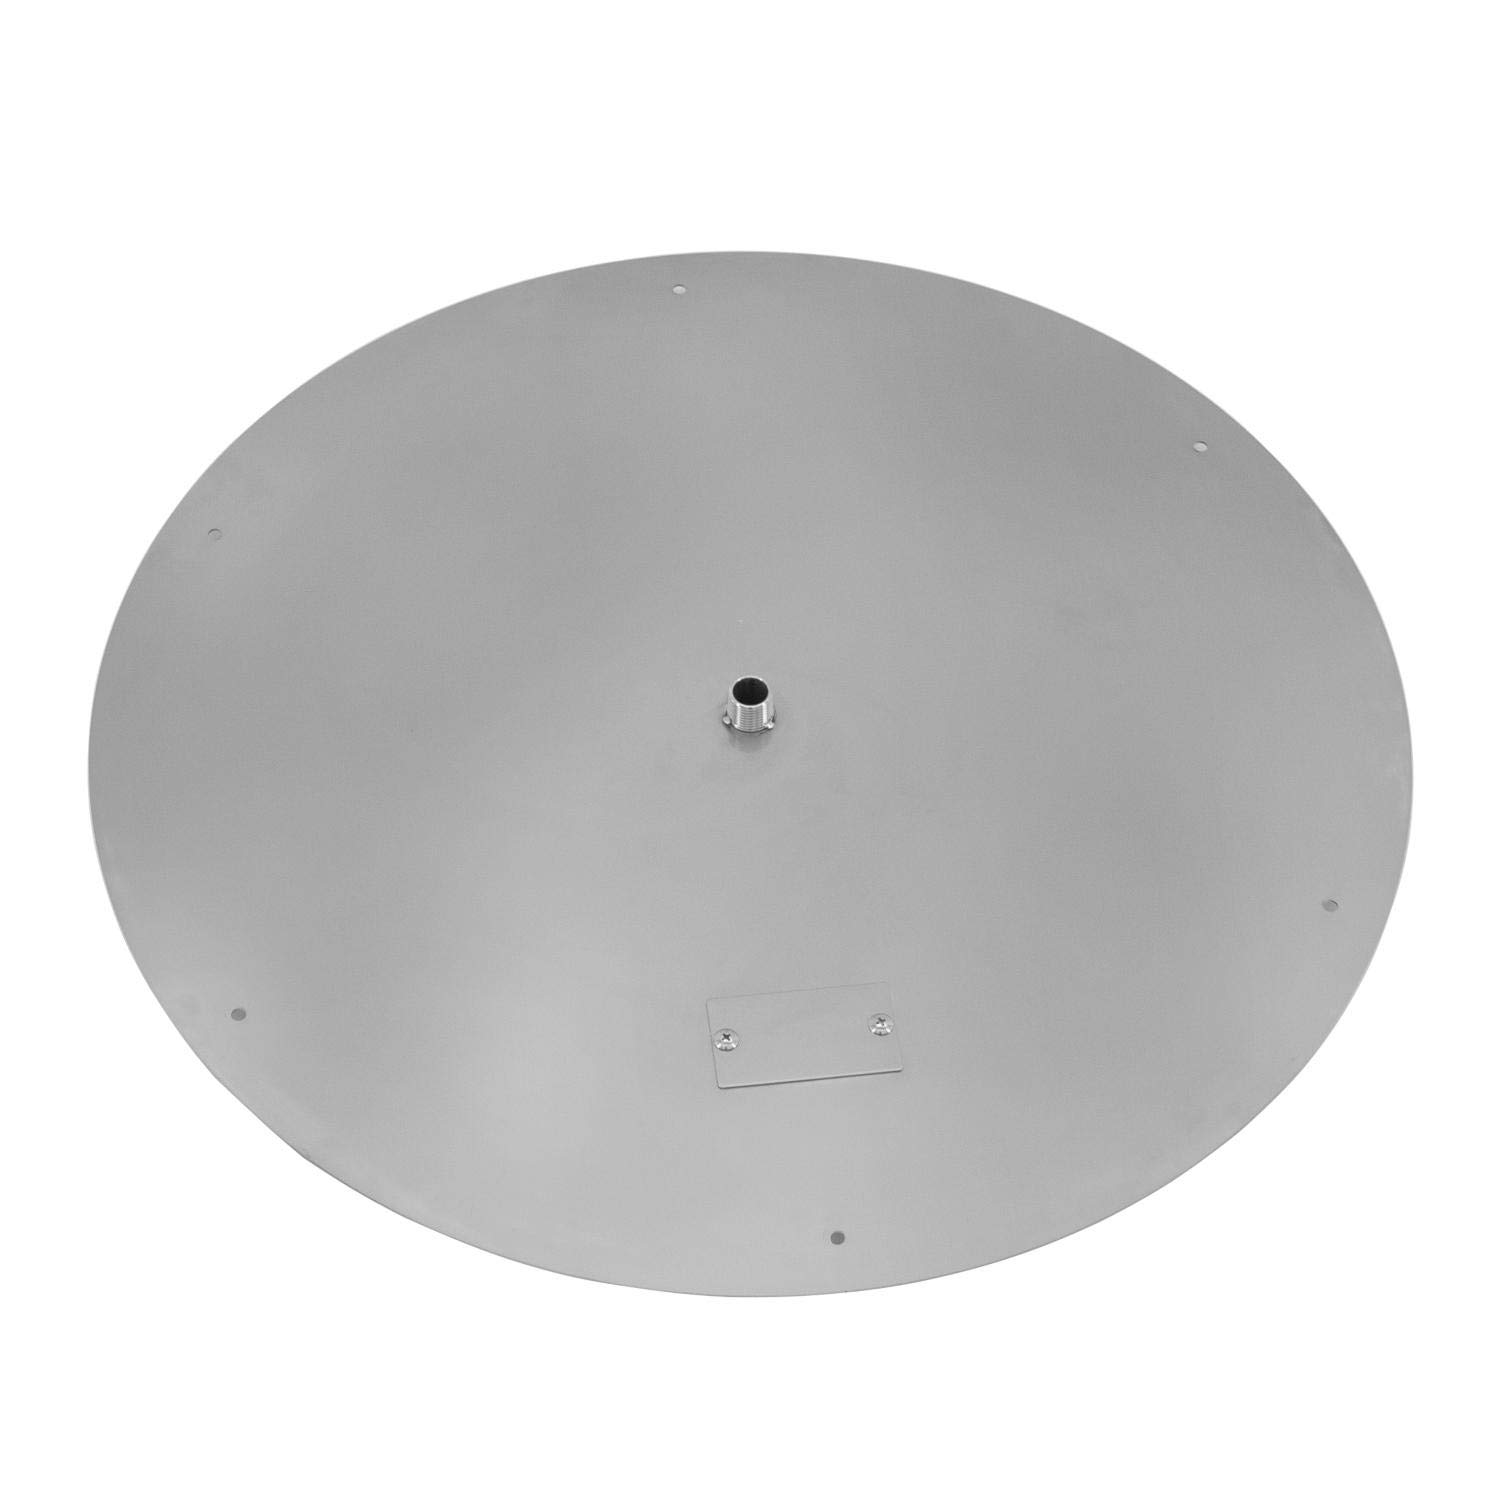 Alpine Flame 30-Inch Flat Round Stainless Fire Pit Burner Pan by Alpine Flame